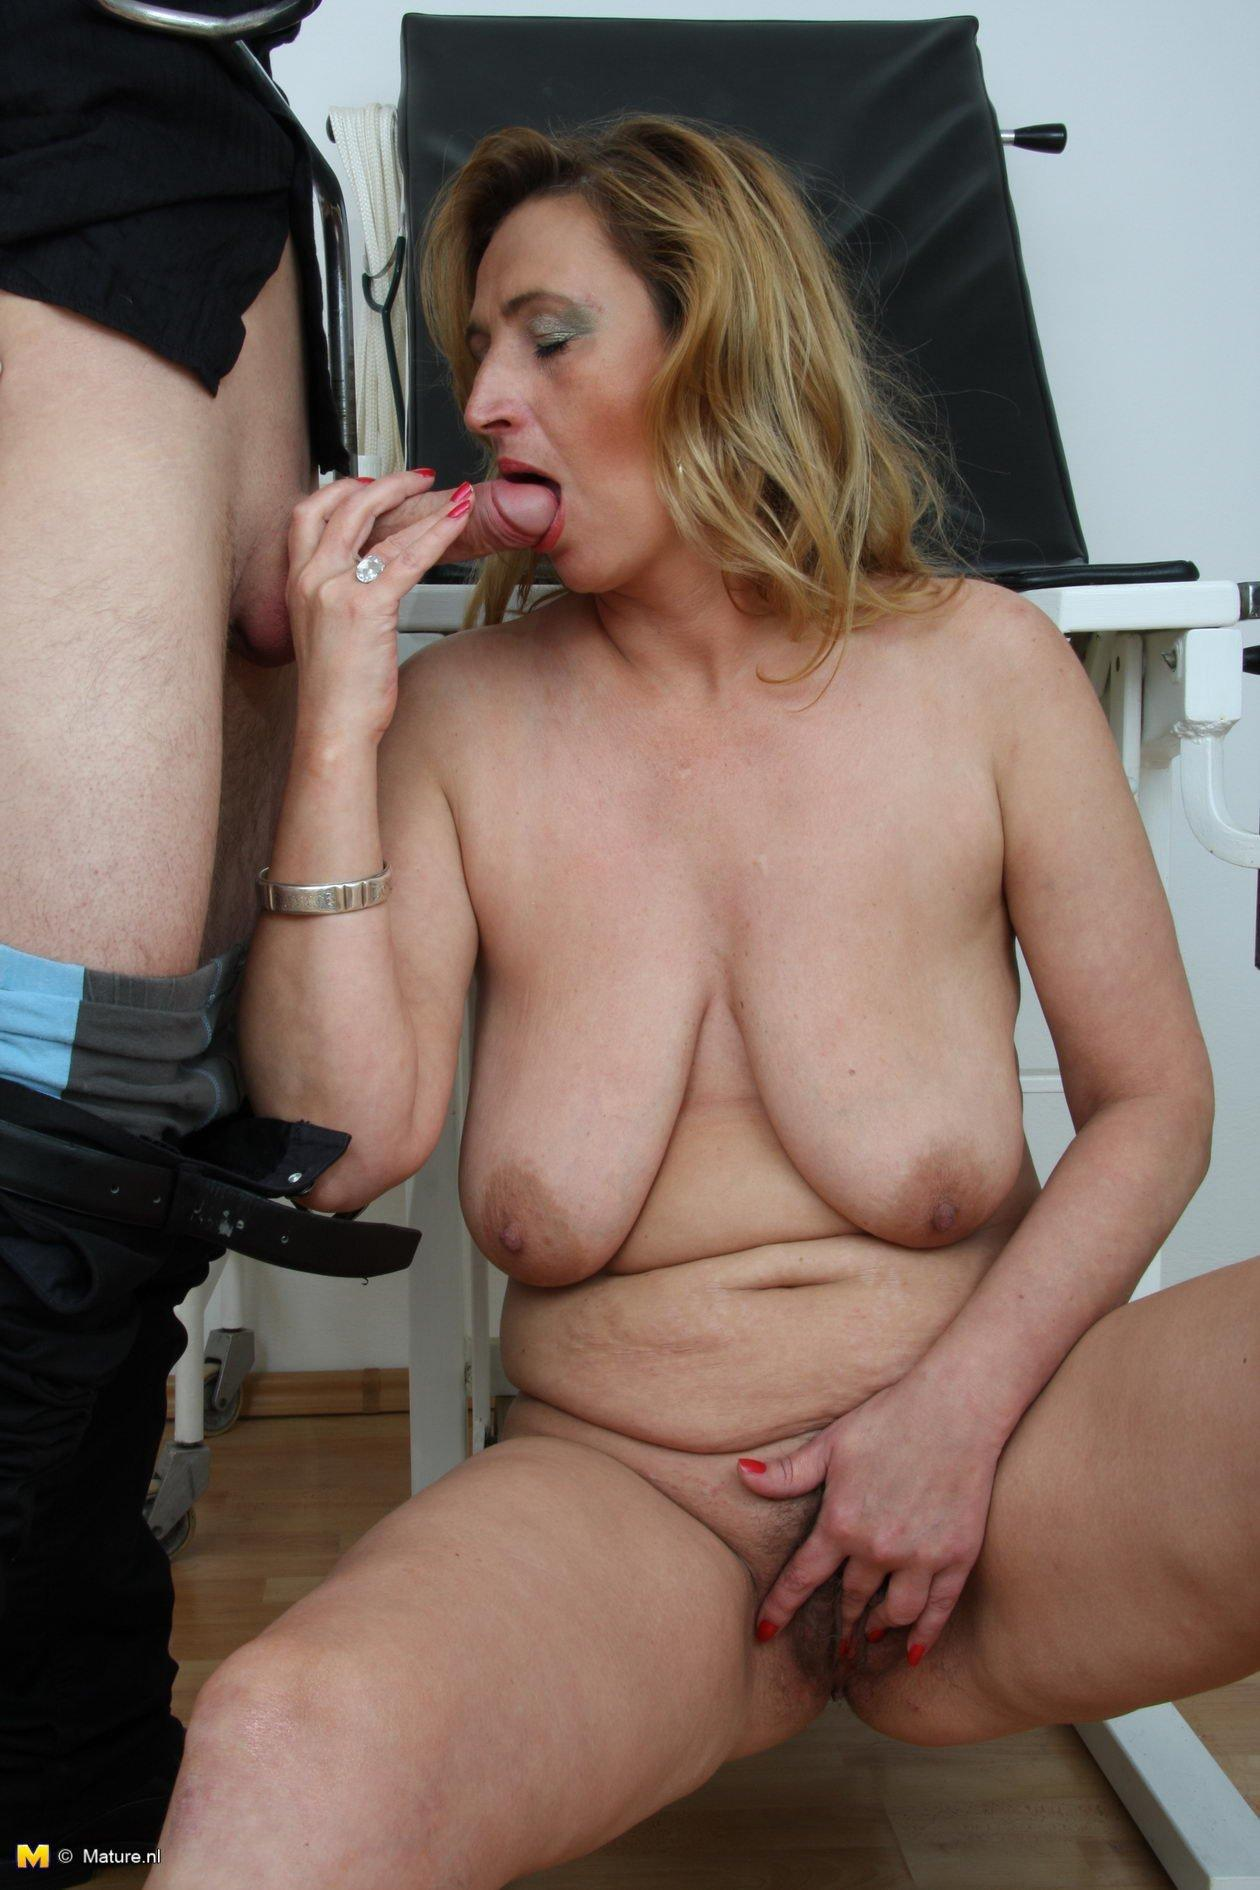 Mature nude slut pictures